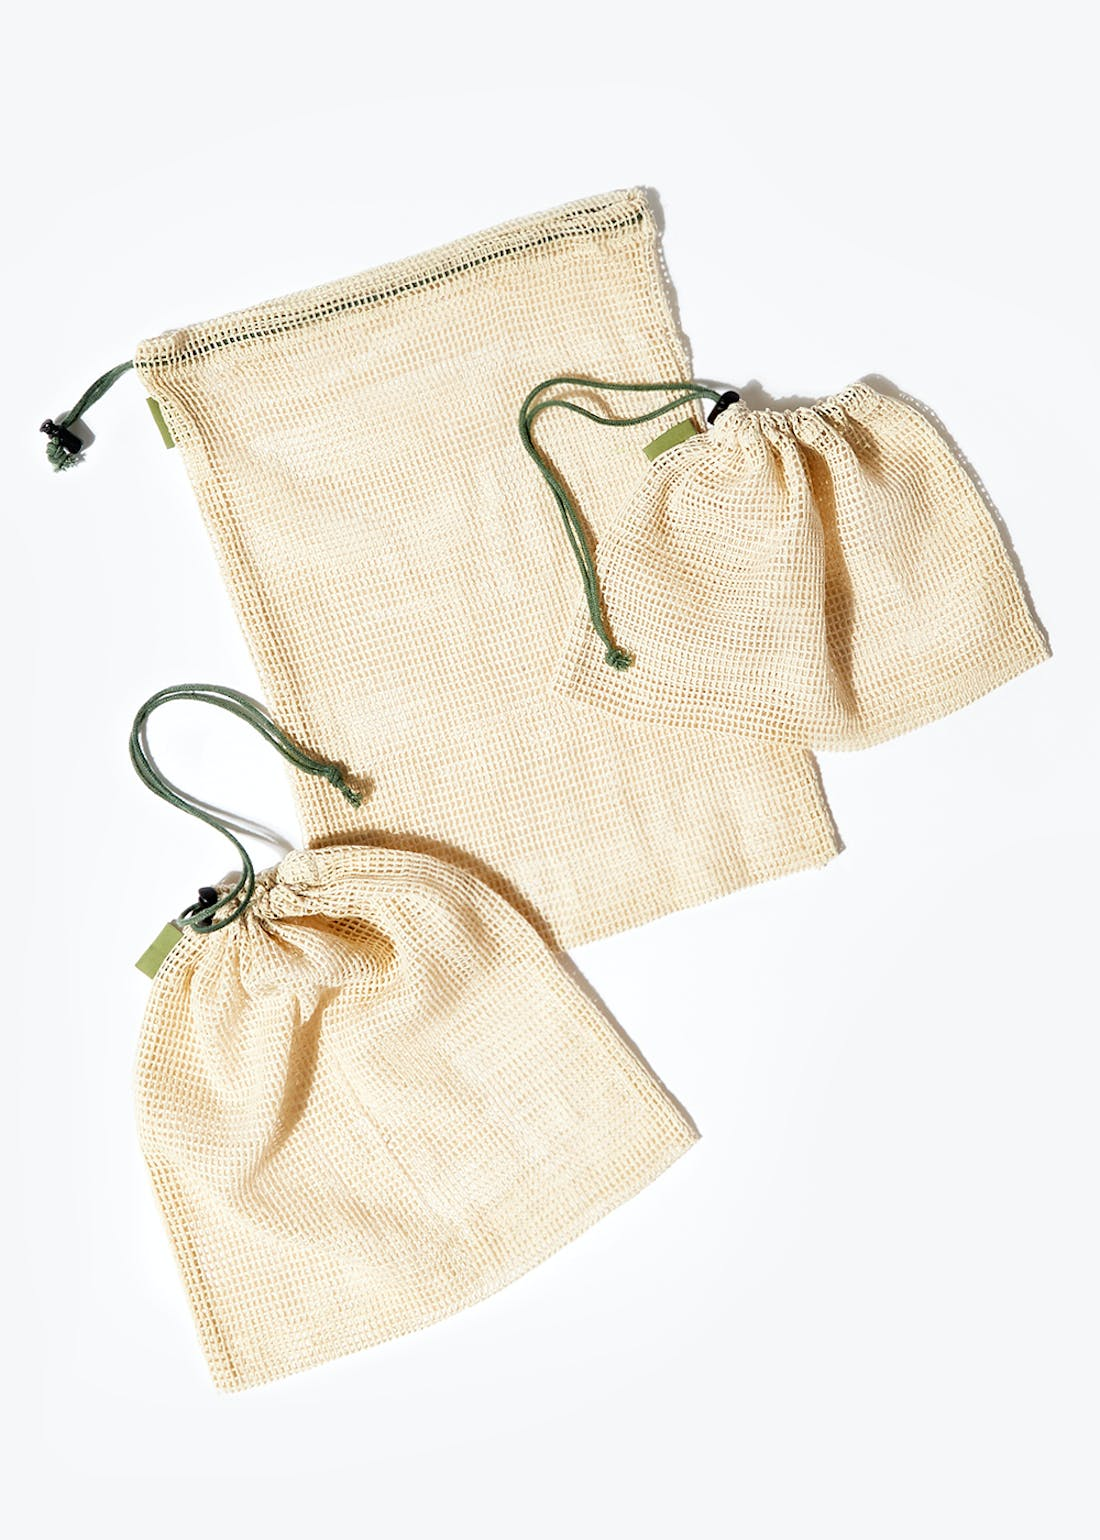 3 Pack Vegetable Storage Bags (38cm x 28cm)